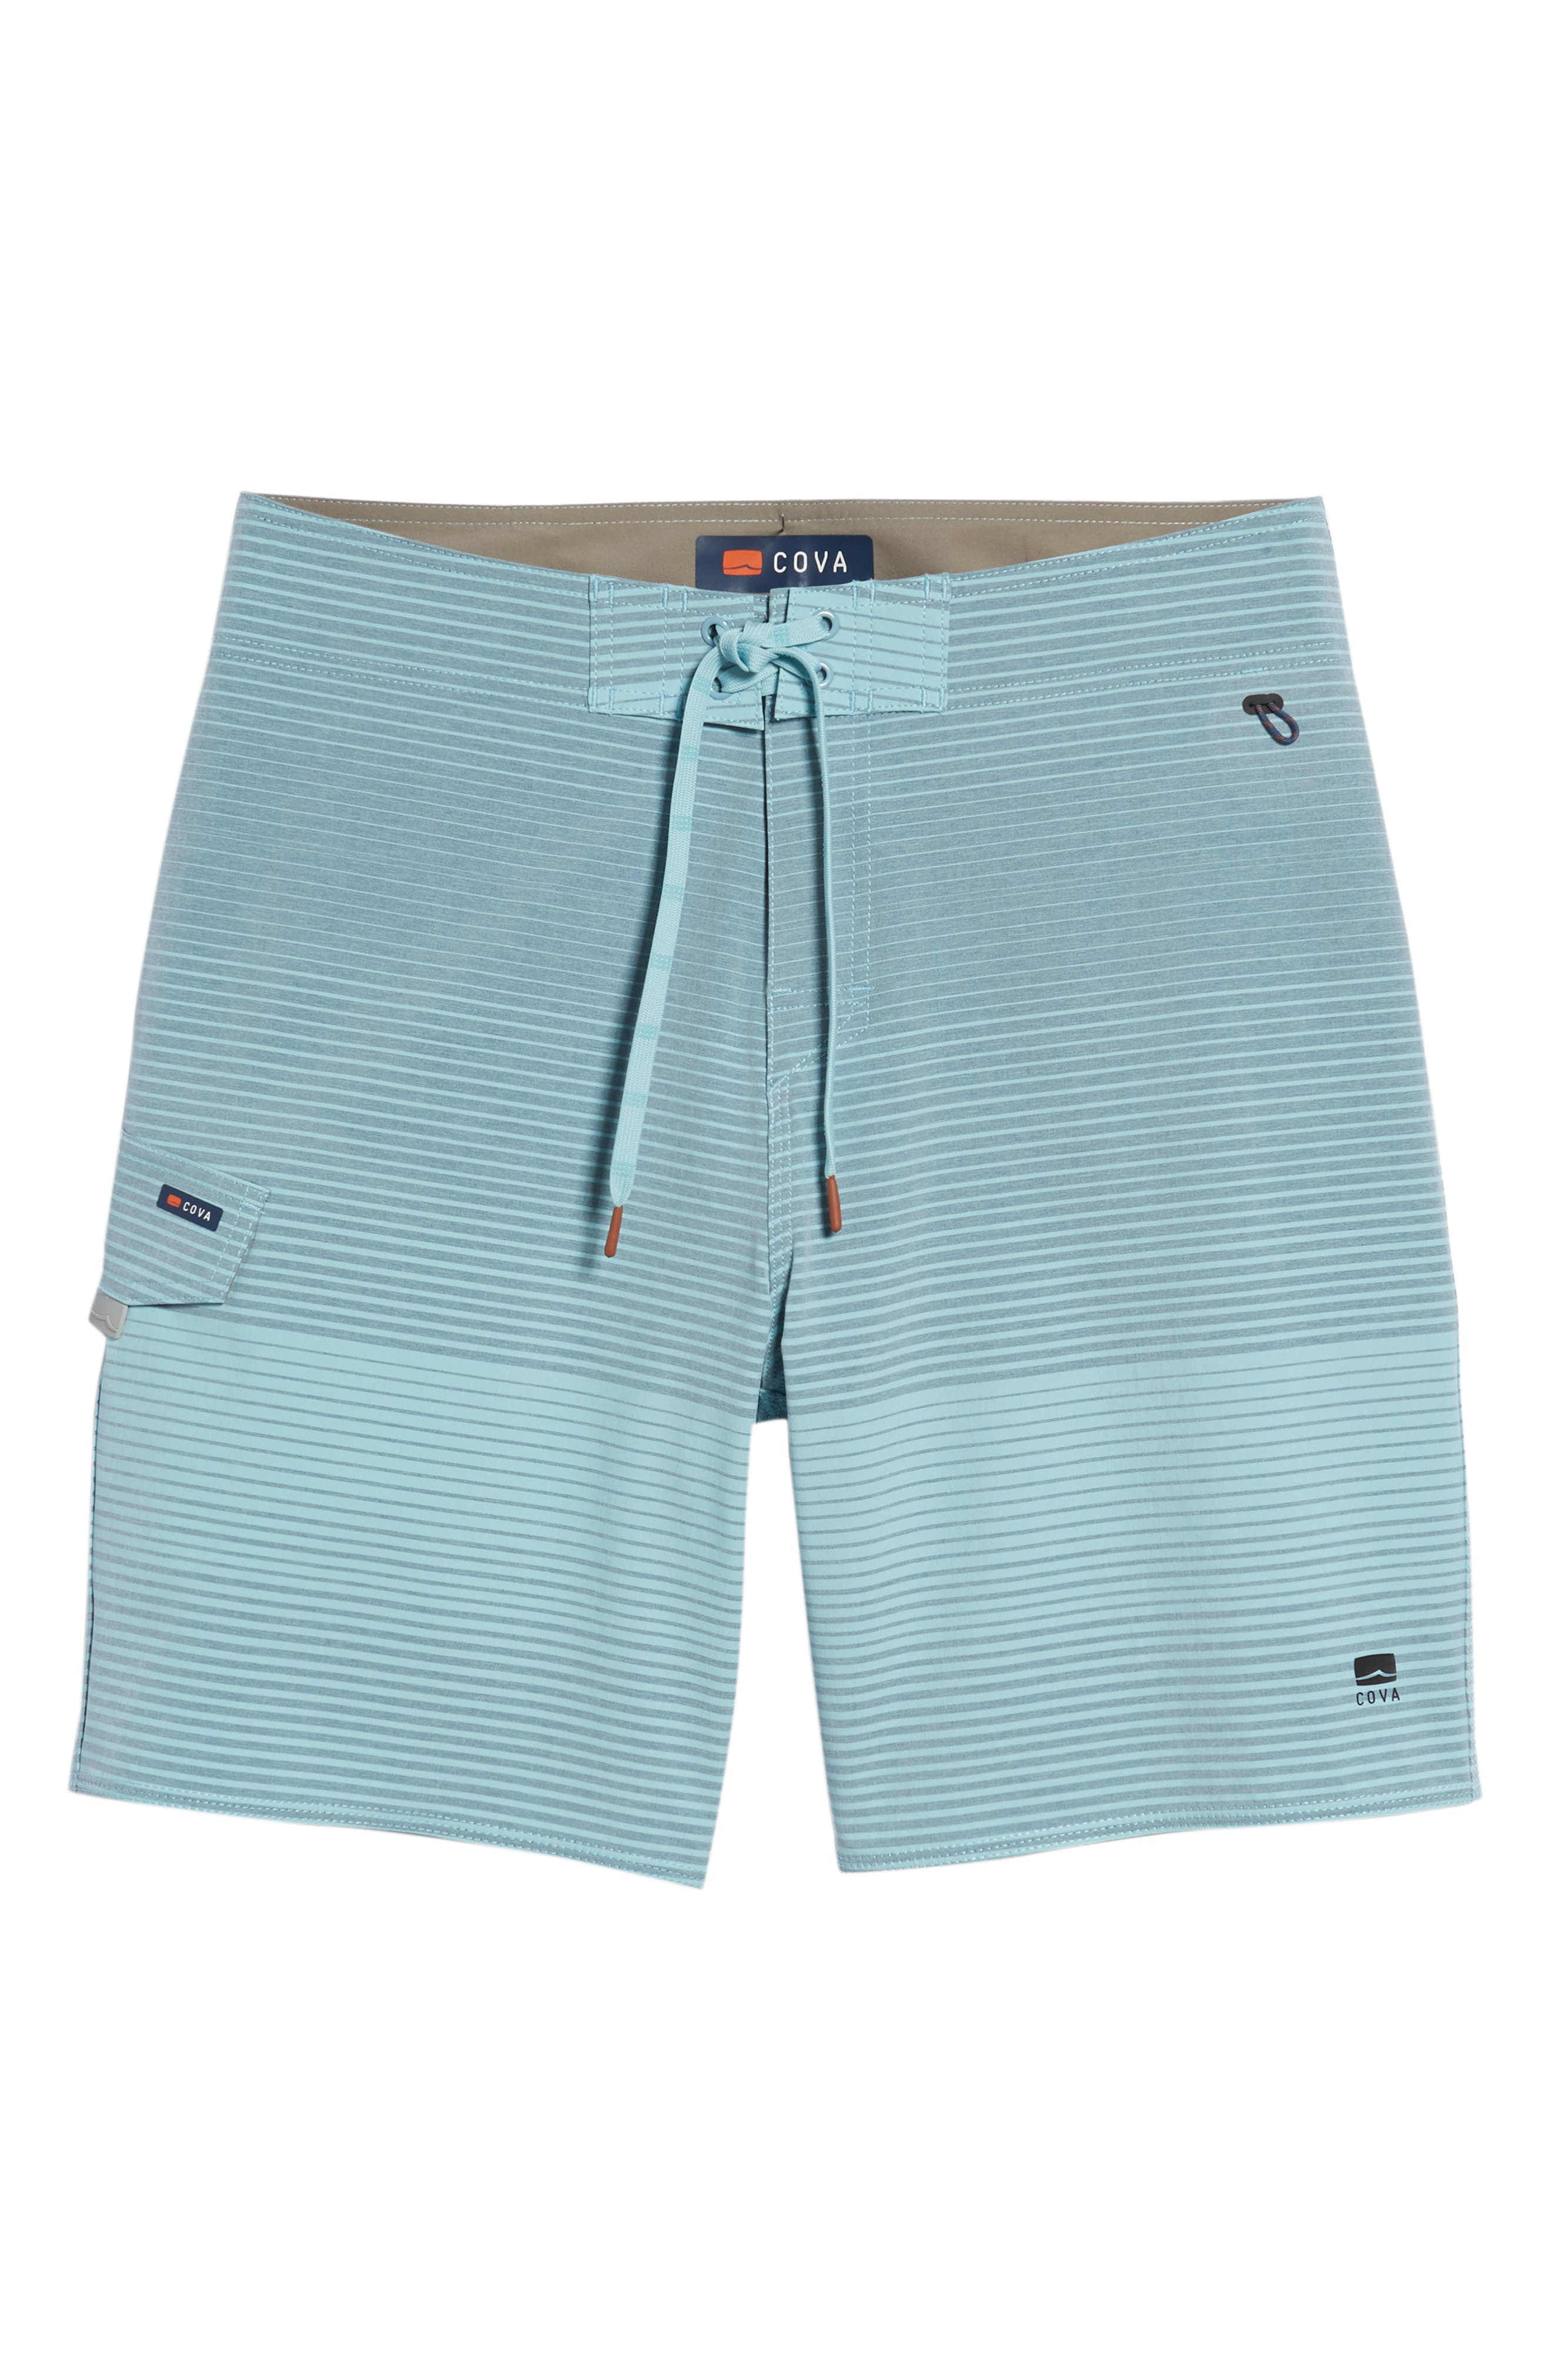 Beachcomber Board Shorts,                             Alternate thumbnail 6, color,                             Charcoal